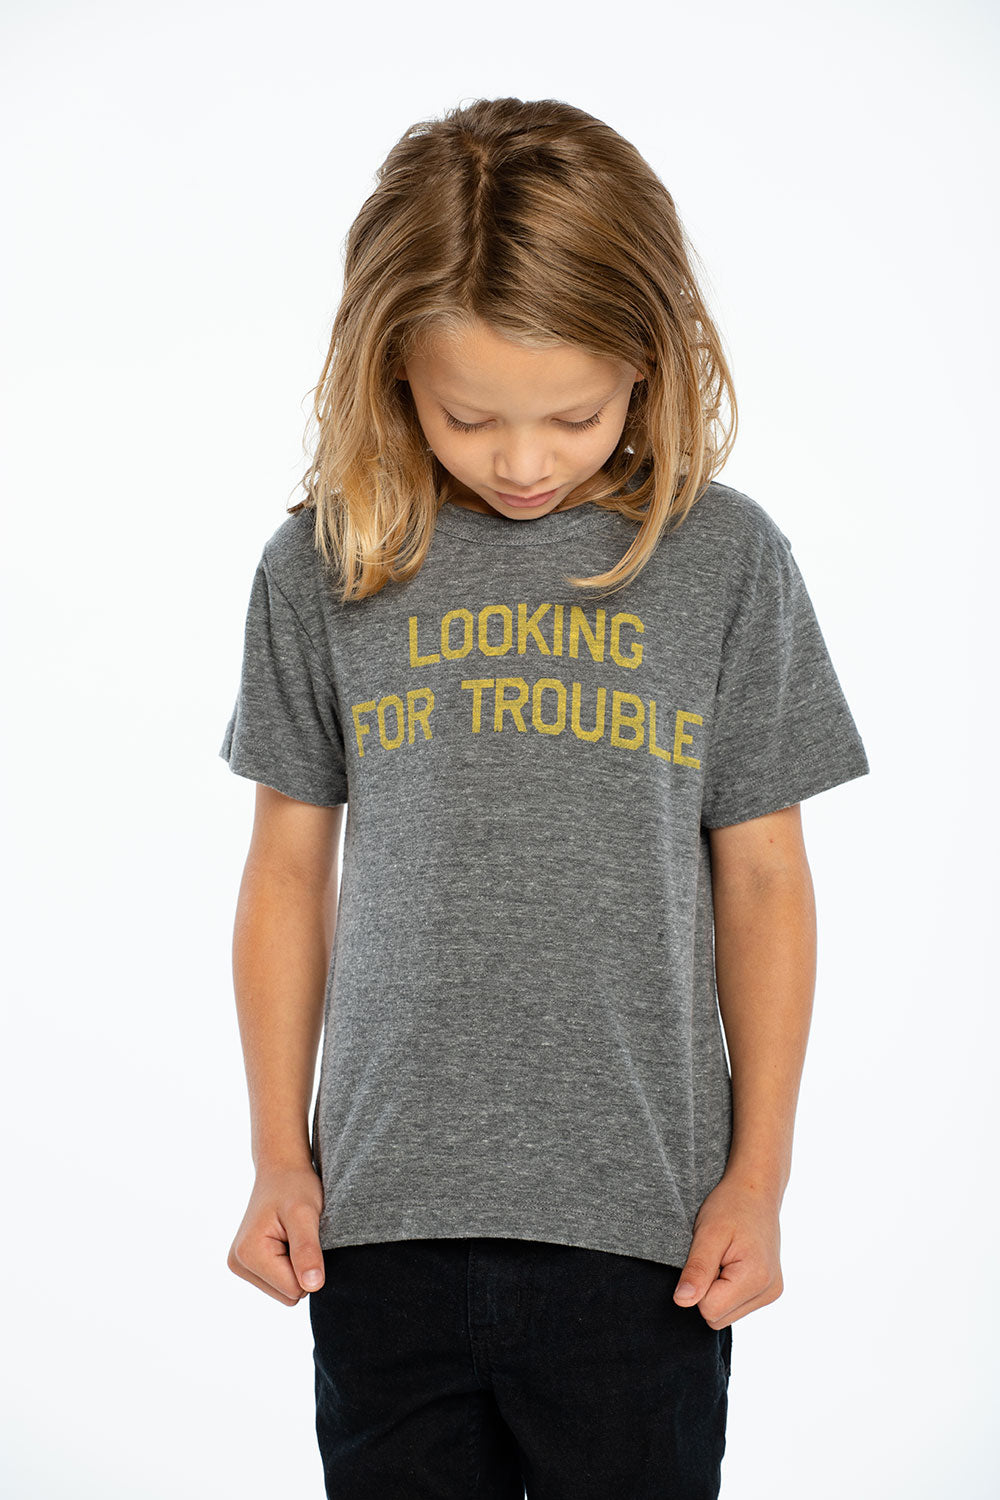 Trouble BOYS chaserbrand4.myshopify.com